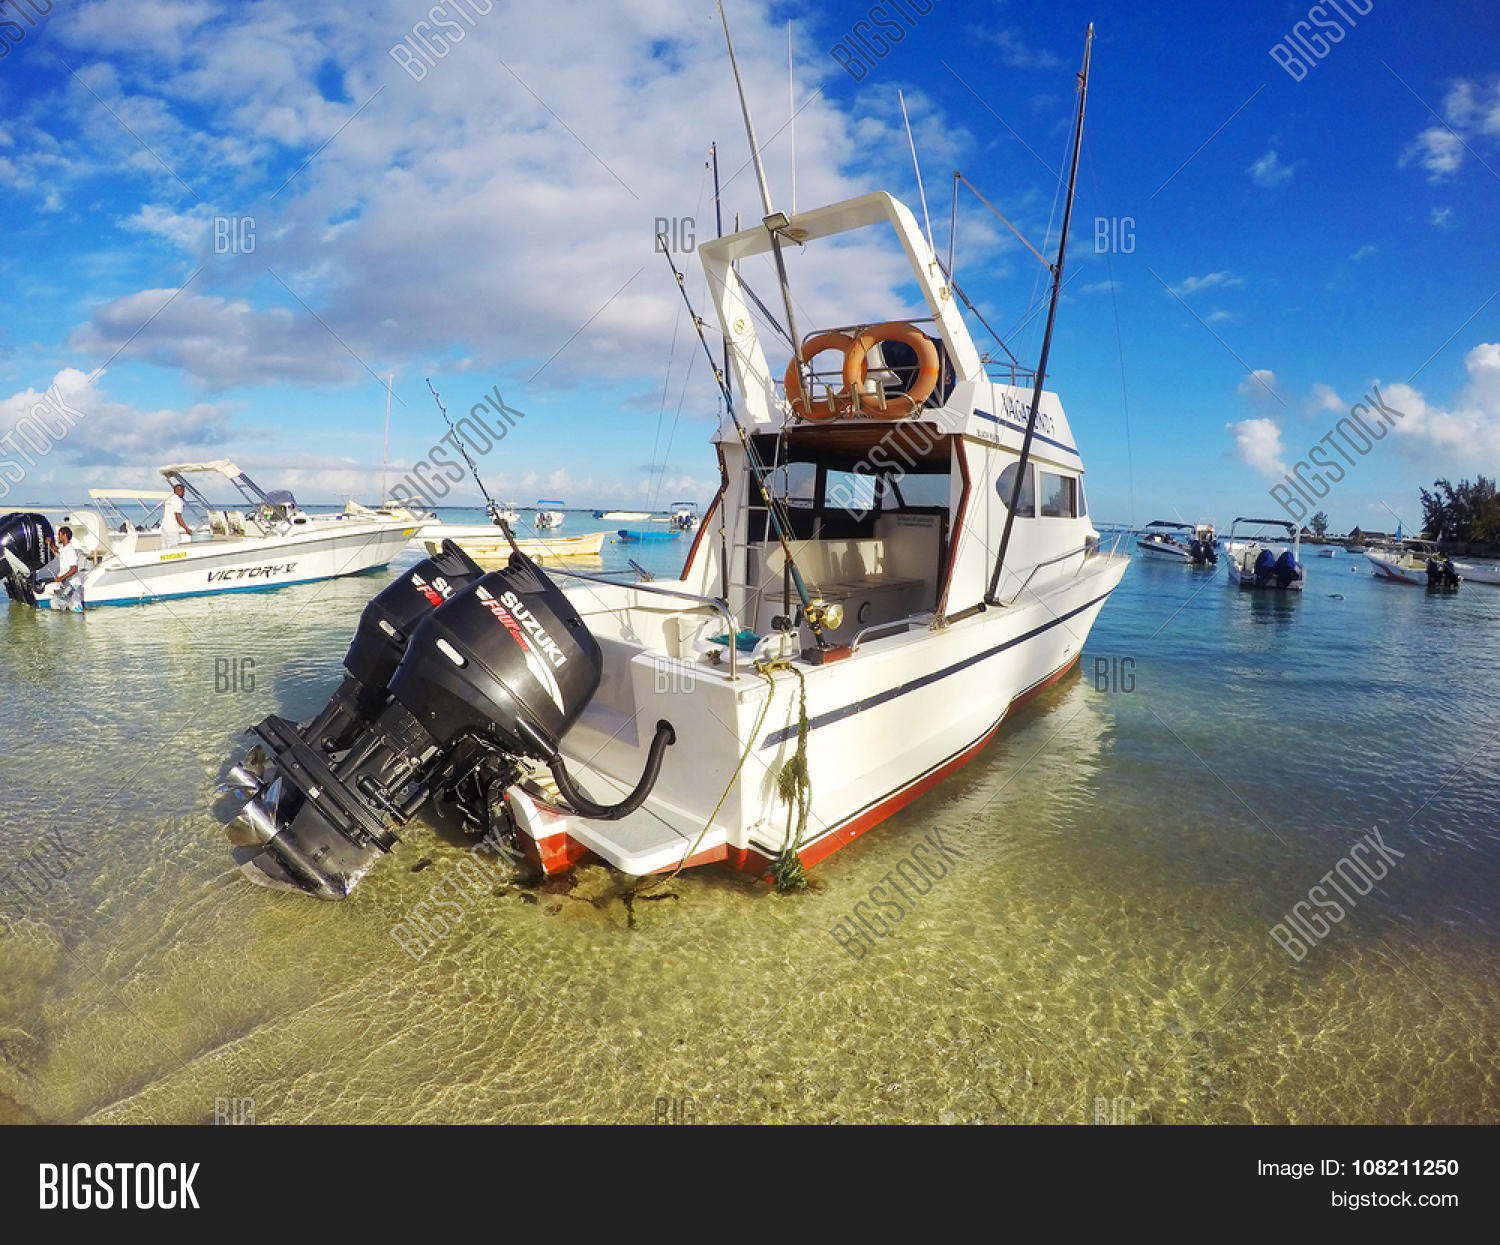 FLIC EN FLAC, MAURITIUS ISLAND - NOVEMBER 2, 2015: The Vagabond 3 big game fishing boat with two ...